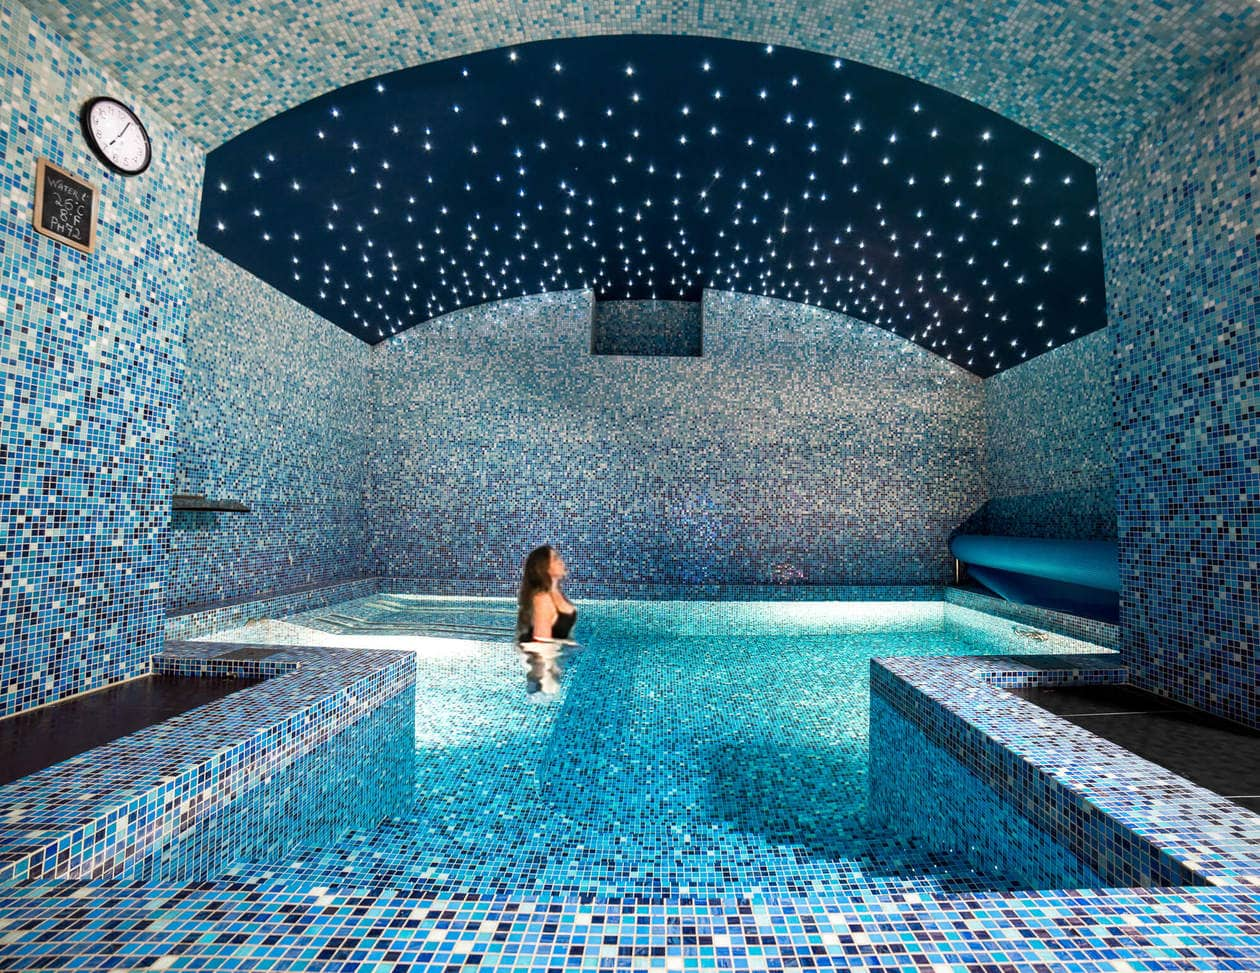 20 Pictures of Riga to Inspire You to Visit // Gallery Park Hotel and Spa